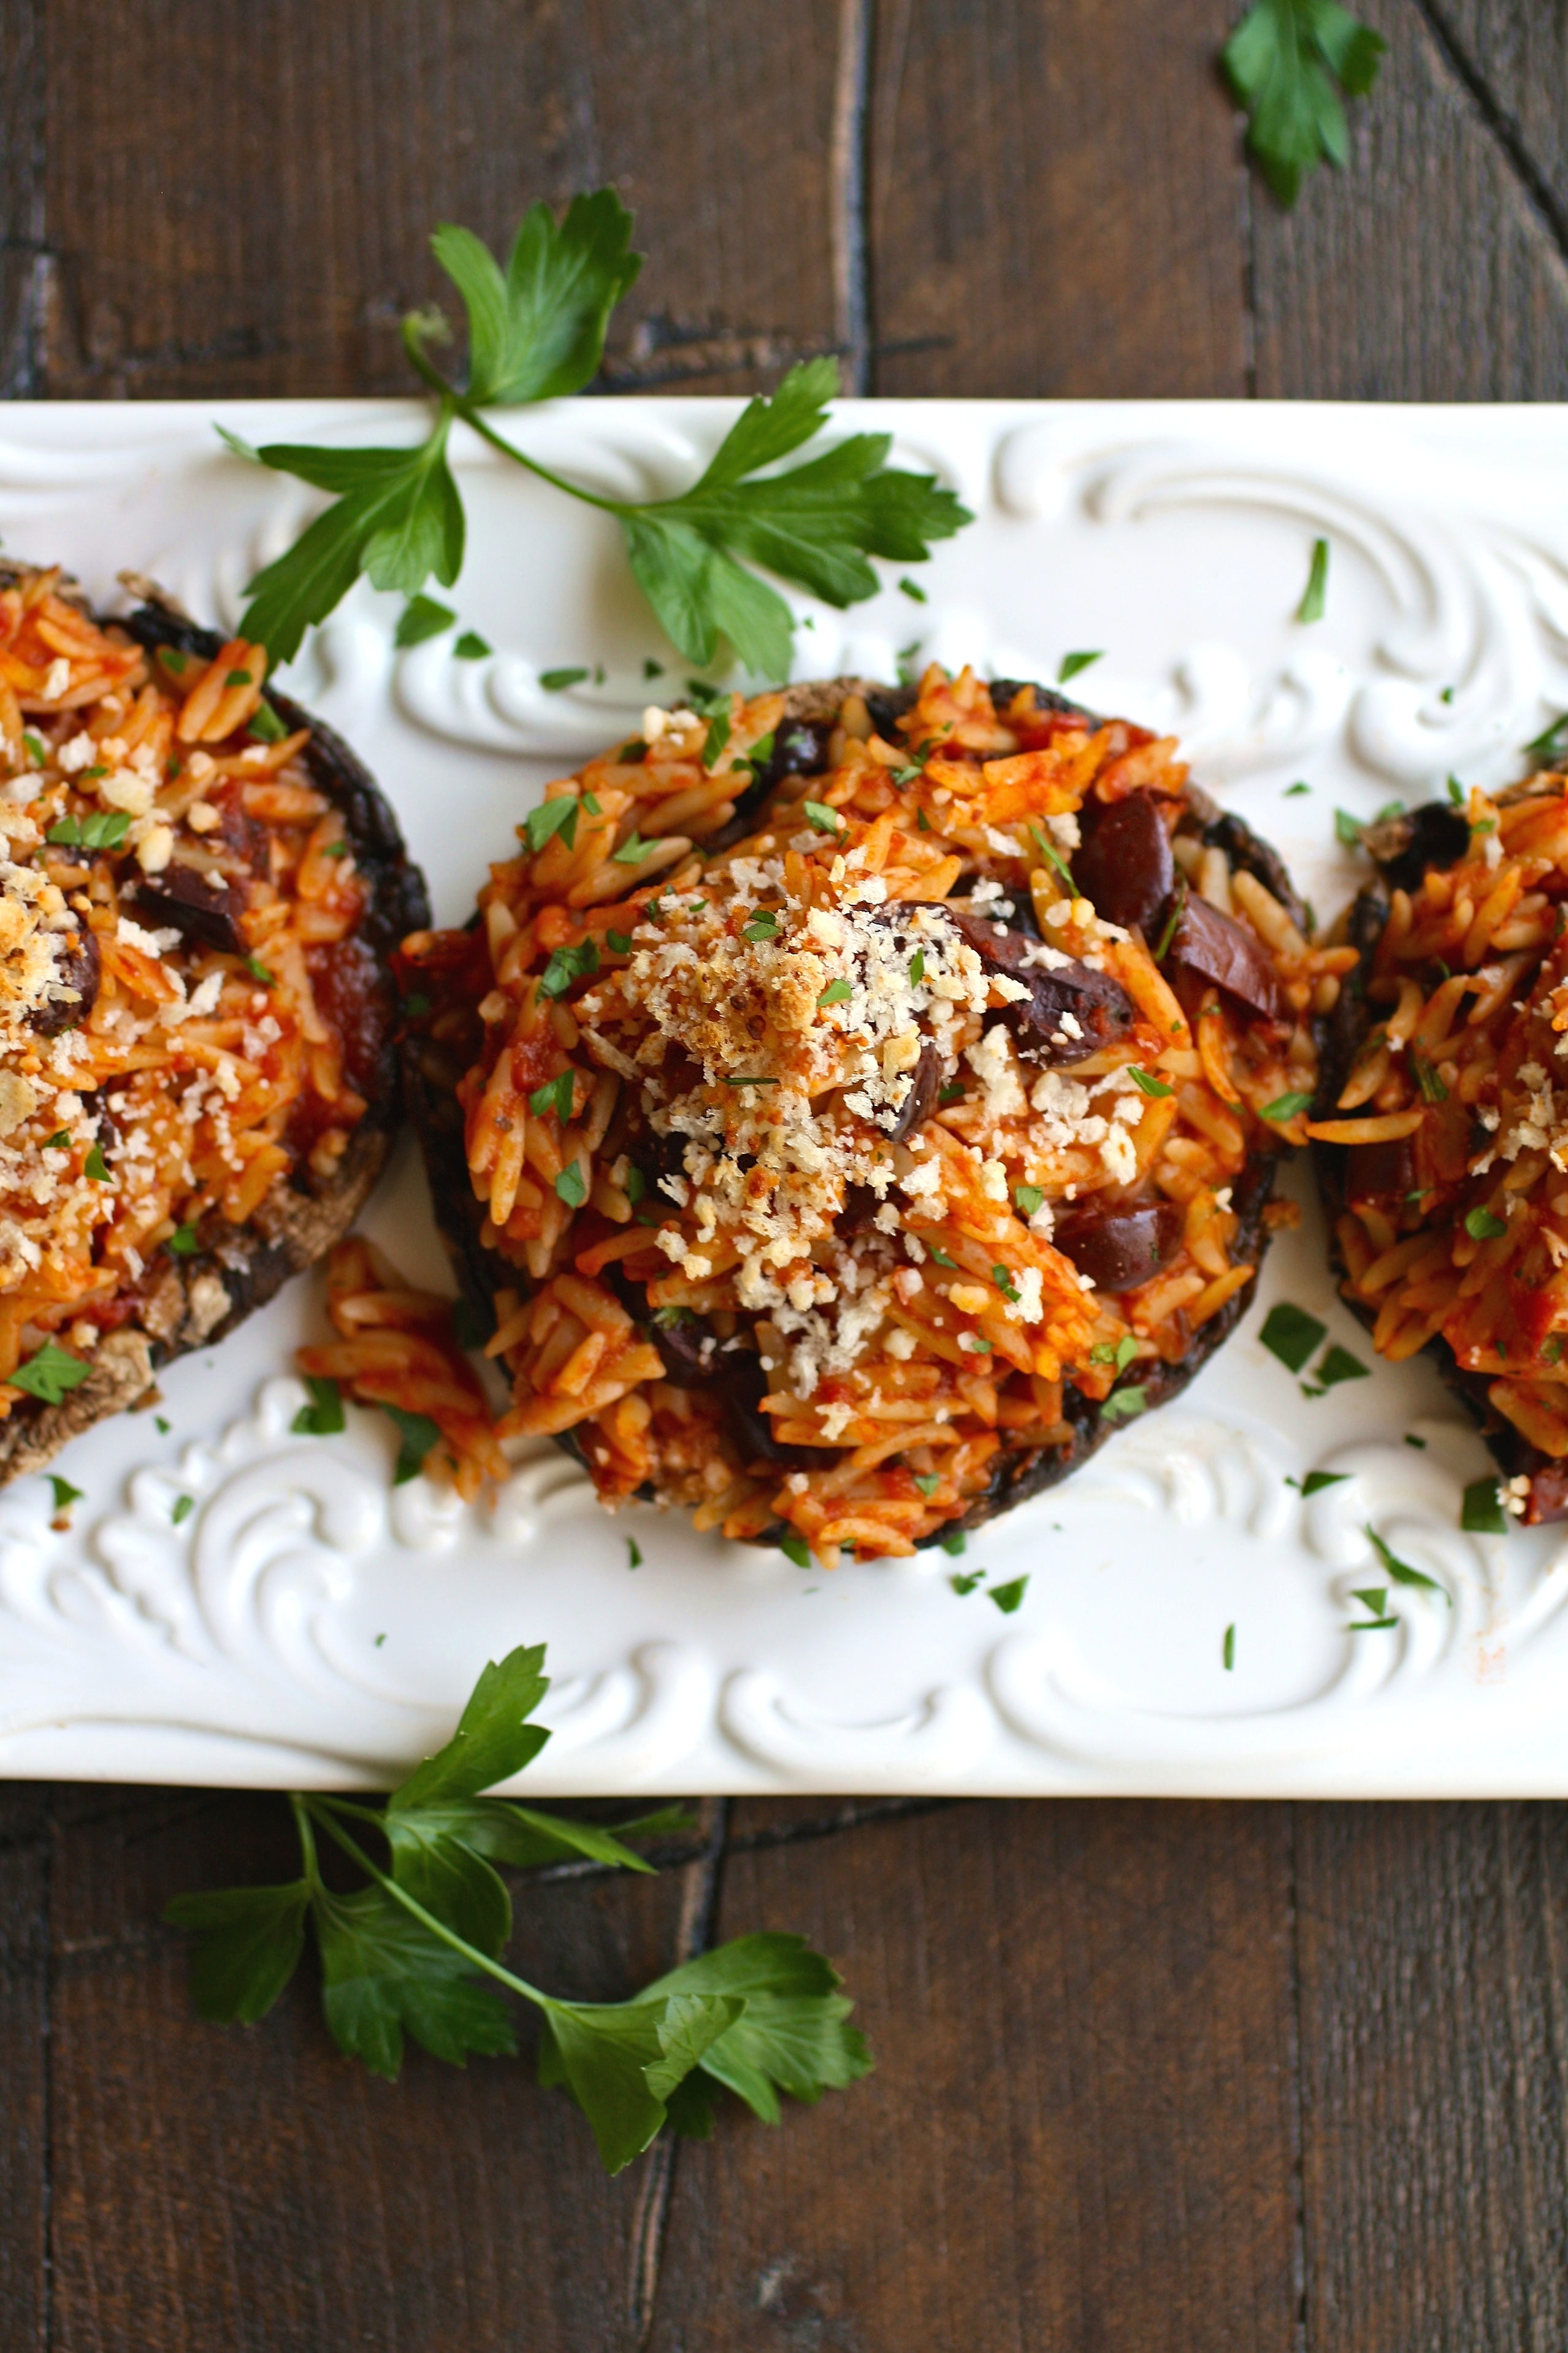 Dig in! This recipe for Orzo & Olive Stuffed Portobello Mushrooms is delicious!